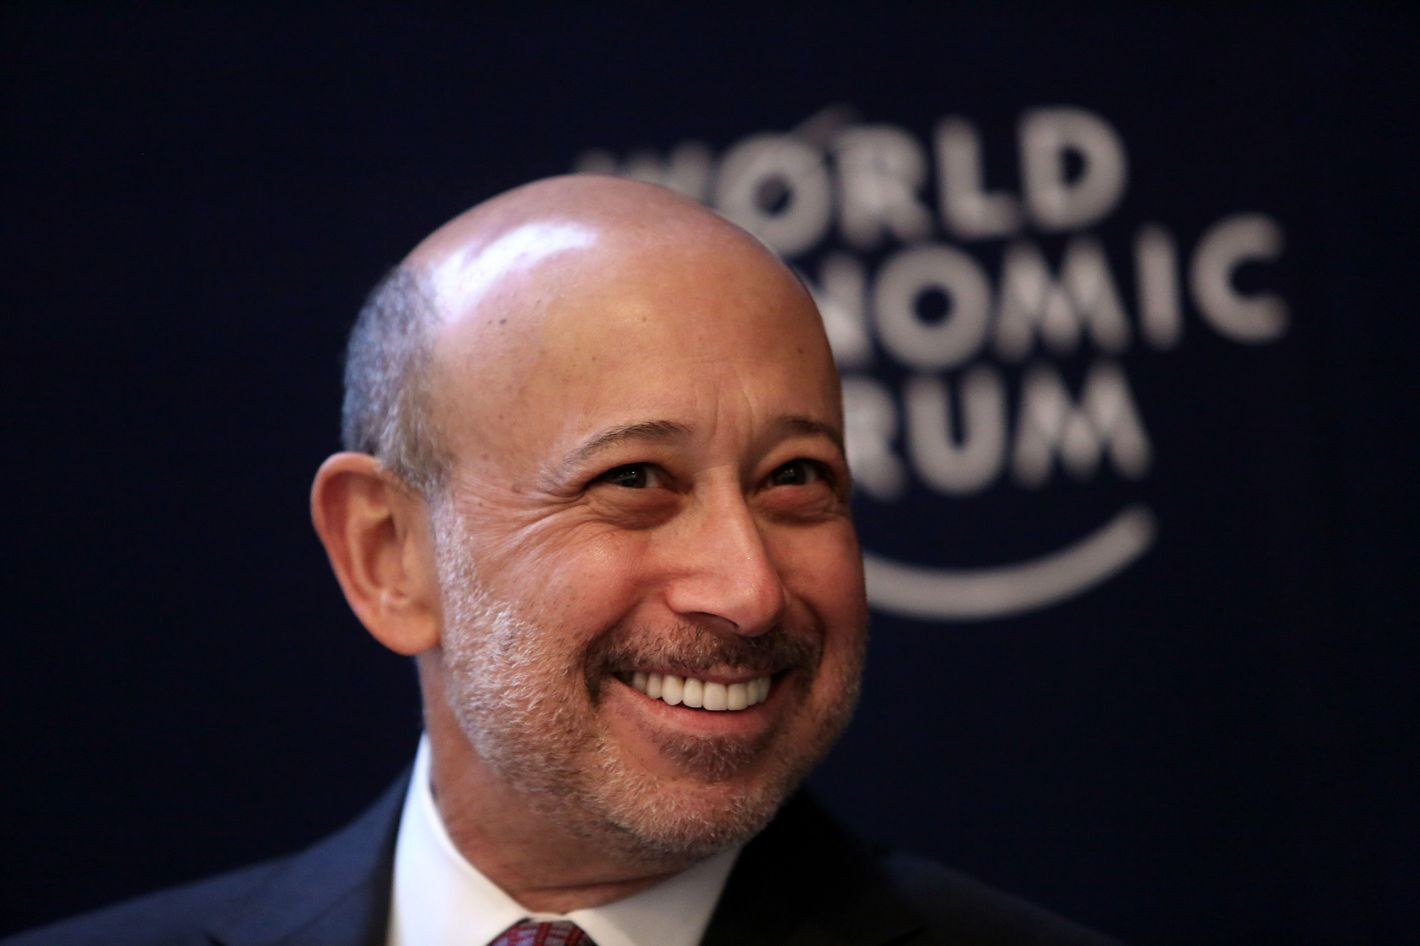 Lloyd Blankfein, chairman and chief executive officer of Goldman Sachs Group Inc., reacts during a session on day three of the World Economic Forum (WEF) in Davos, Switzerland, on Friday, Jan. 25, 2013. World leaders, influential executives, bankers and policy makers attend the 43rd annual meeting of the World Economic Forum in Davos, the five day event runs from Jan. 23-27.